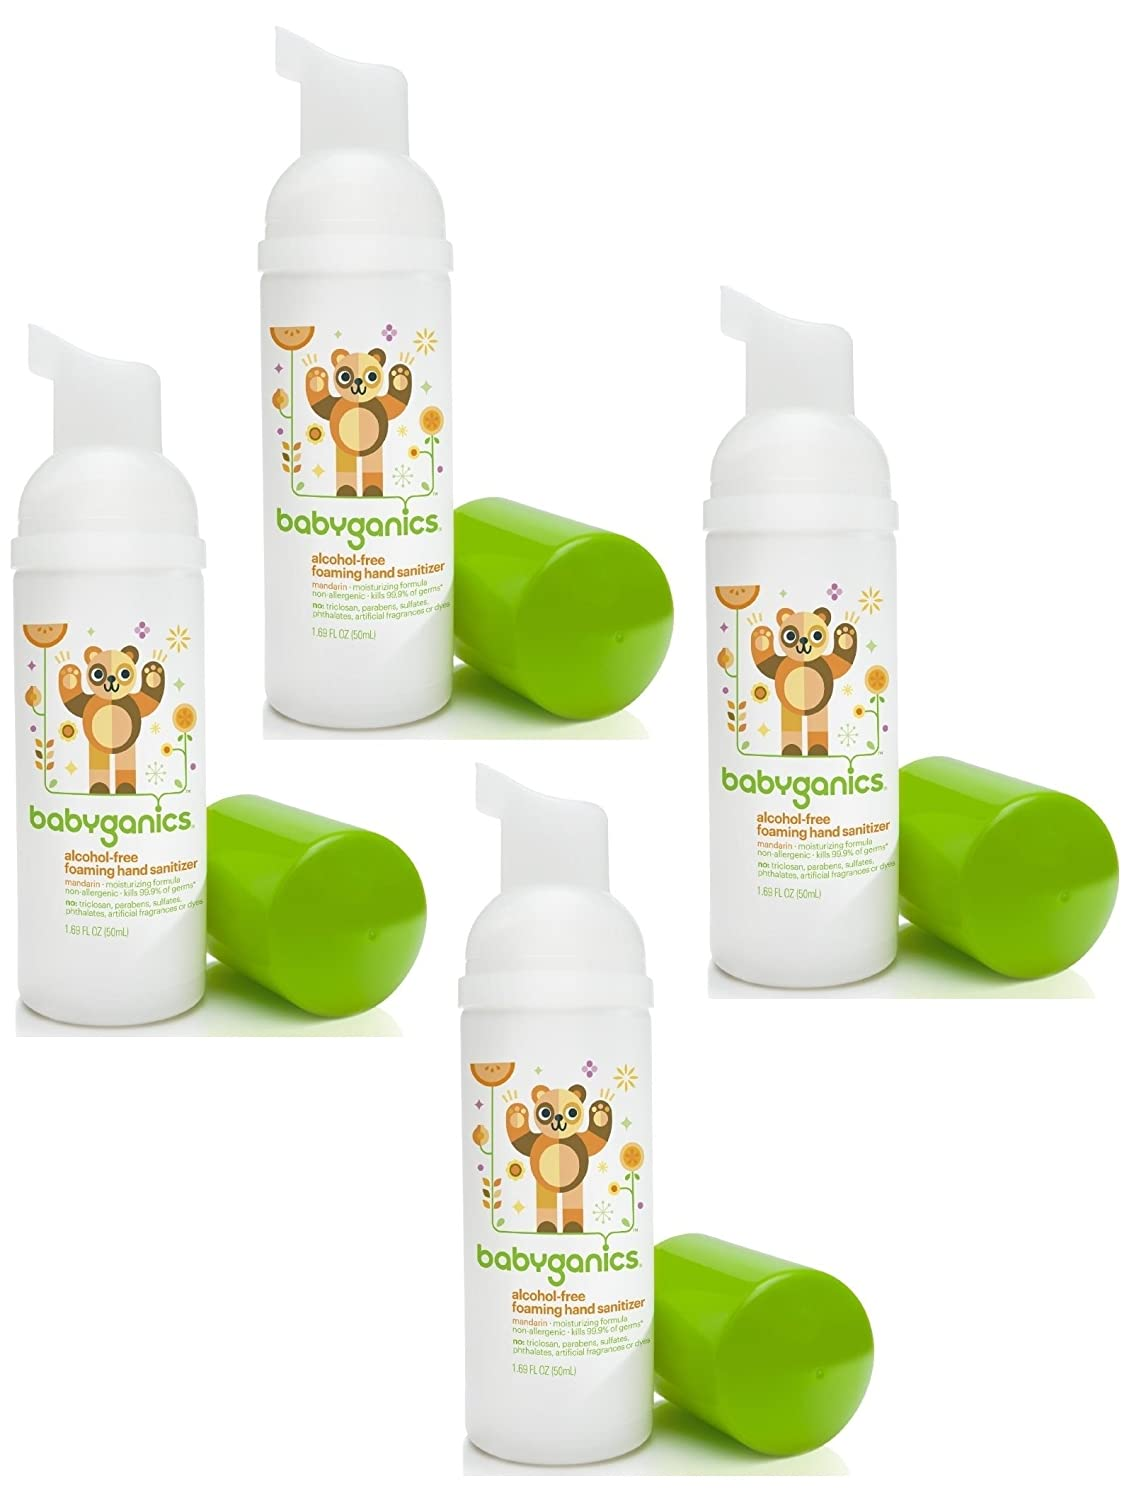 babyganics the germinator alcohol free foaming hand sanitizer